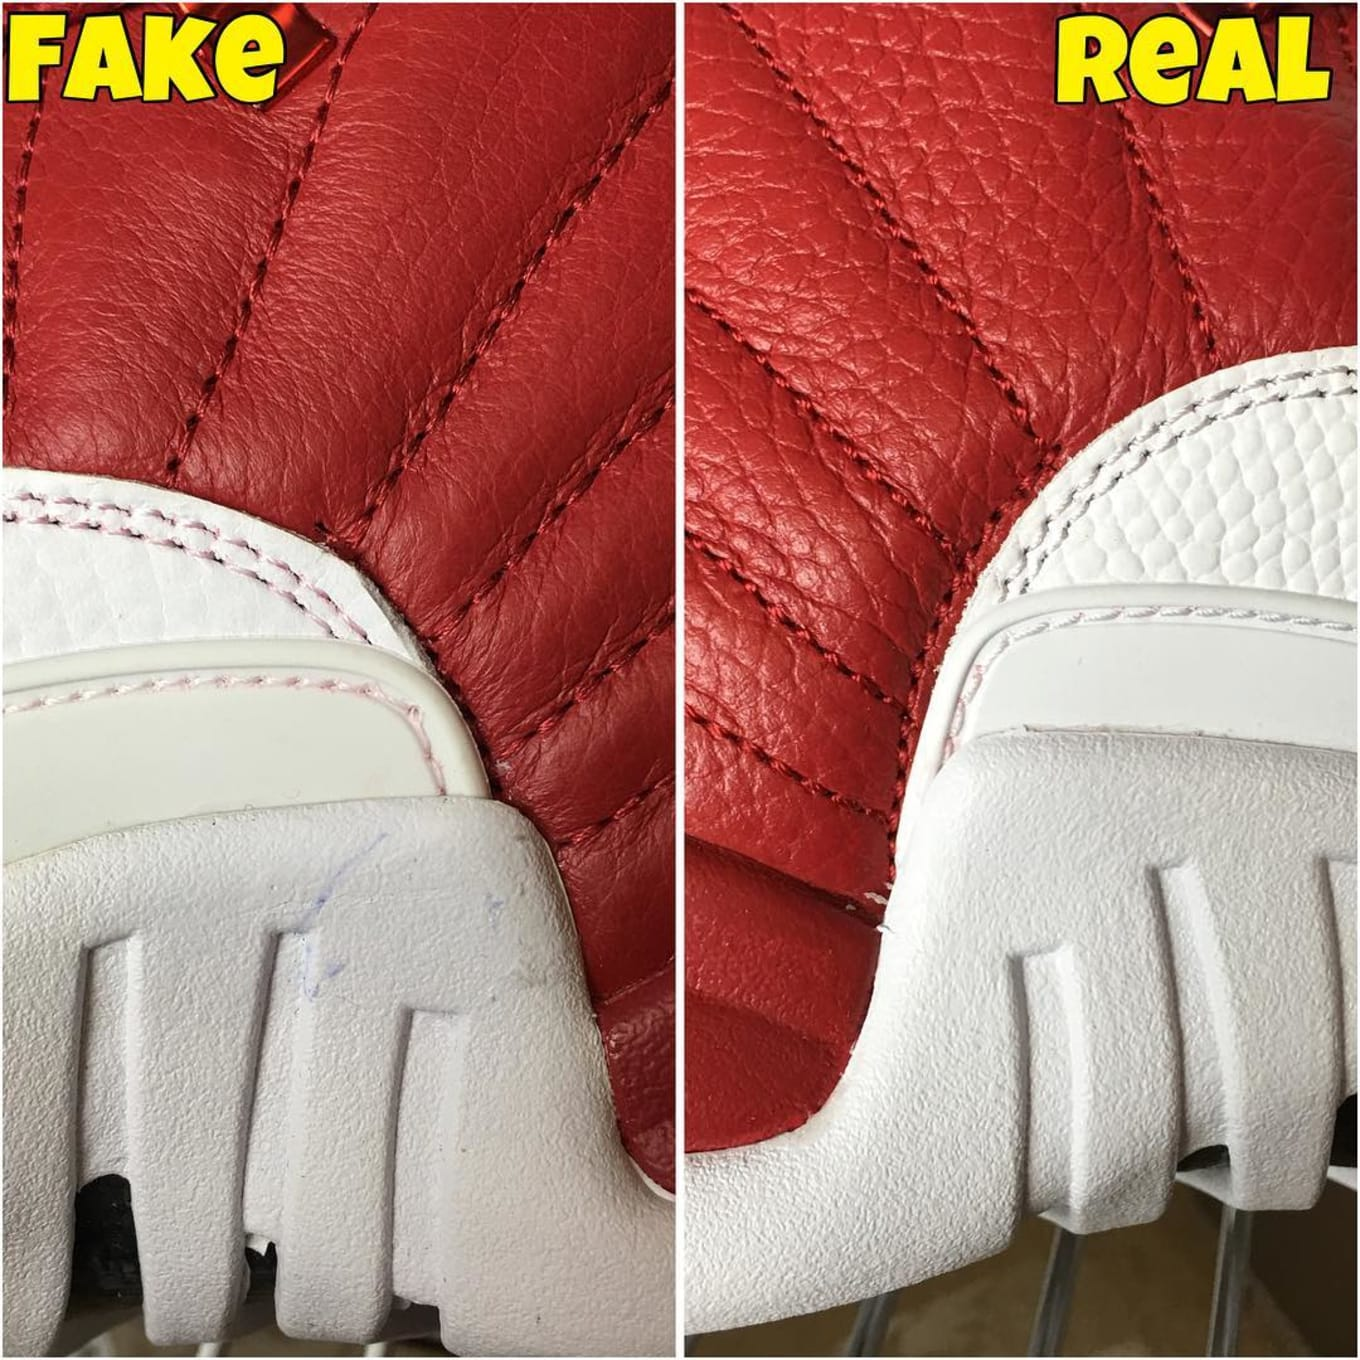 Air Jordan XII 12 Gym Red Alternate Real Fake Legit Check (8) 70fa3c8c0